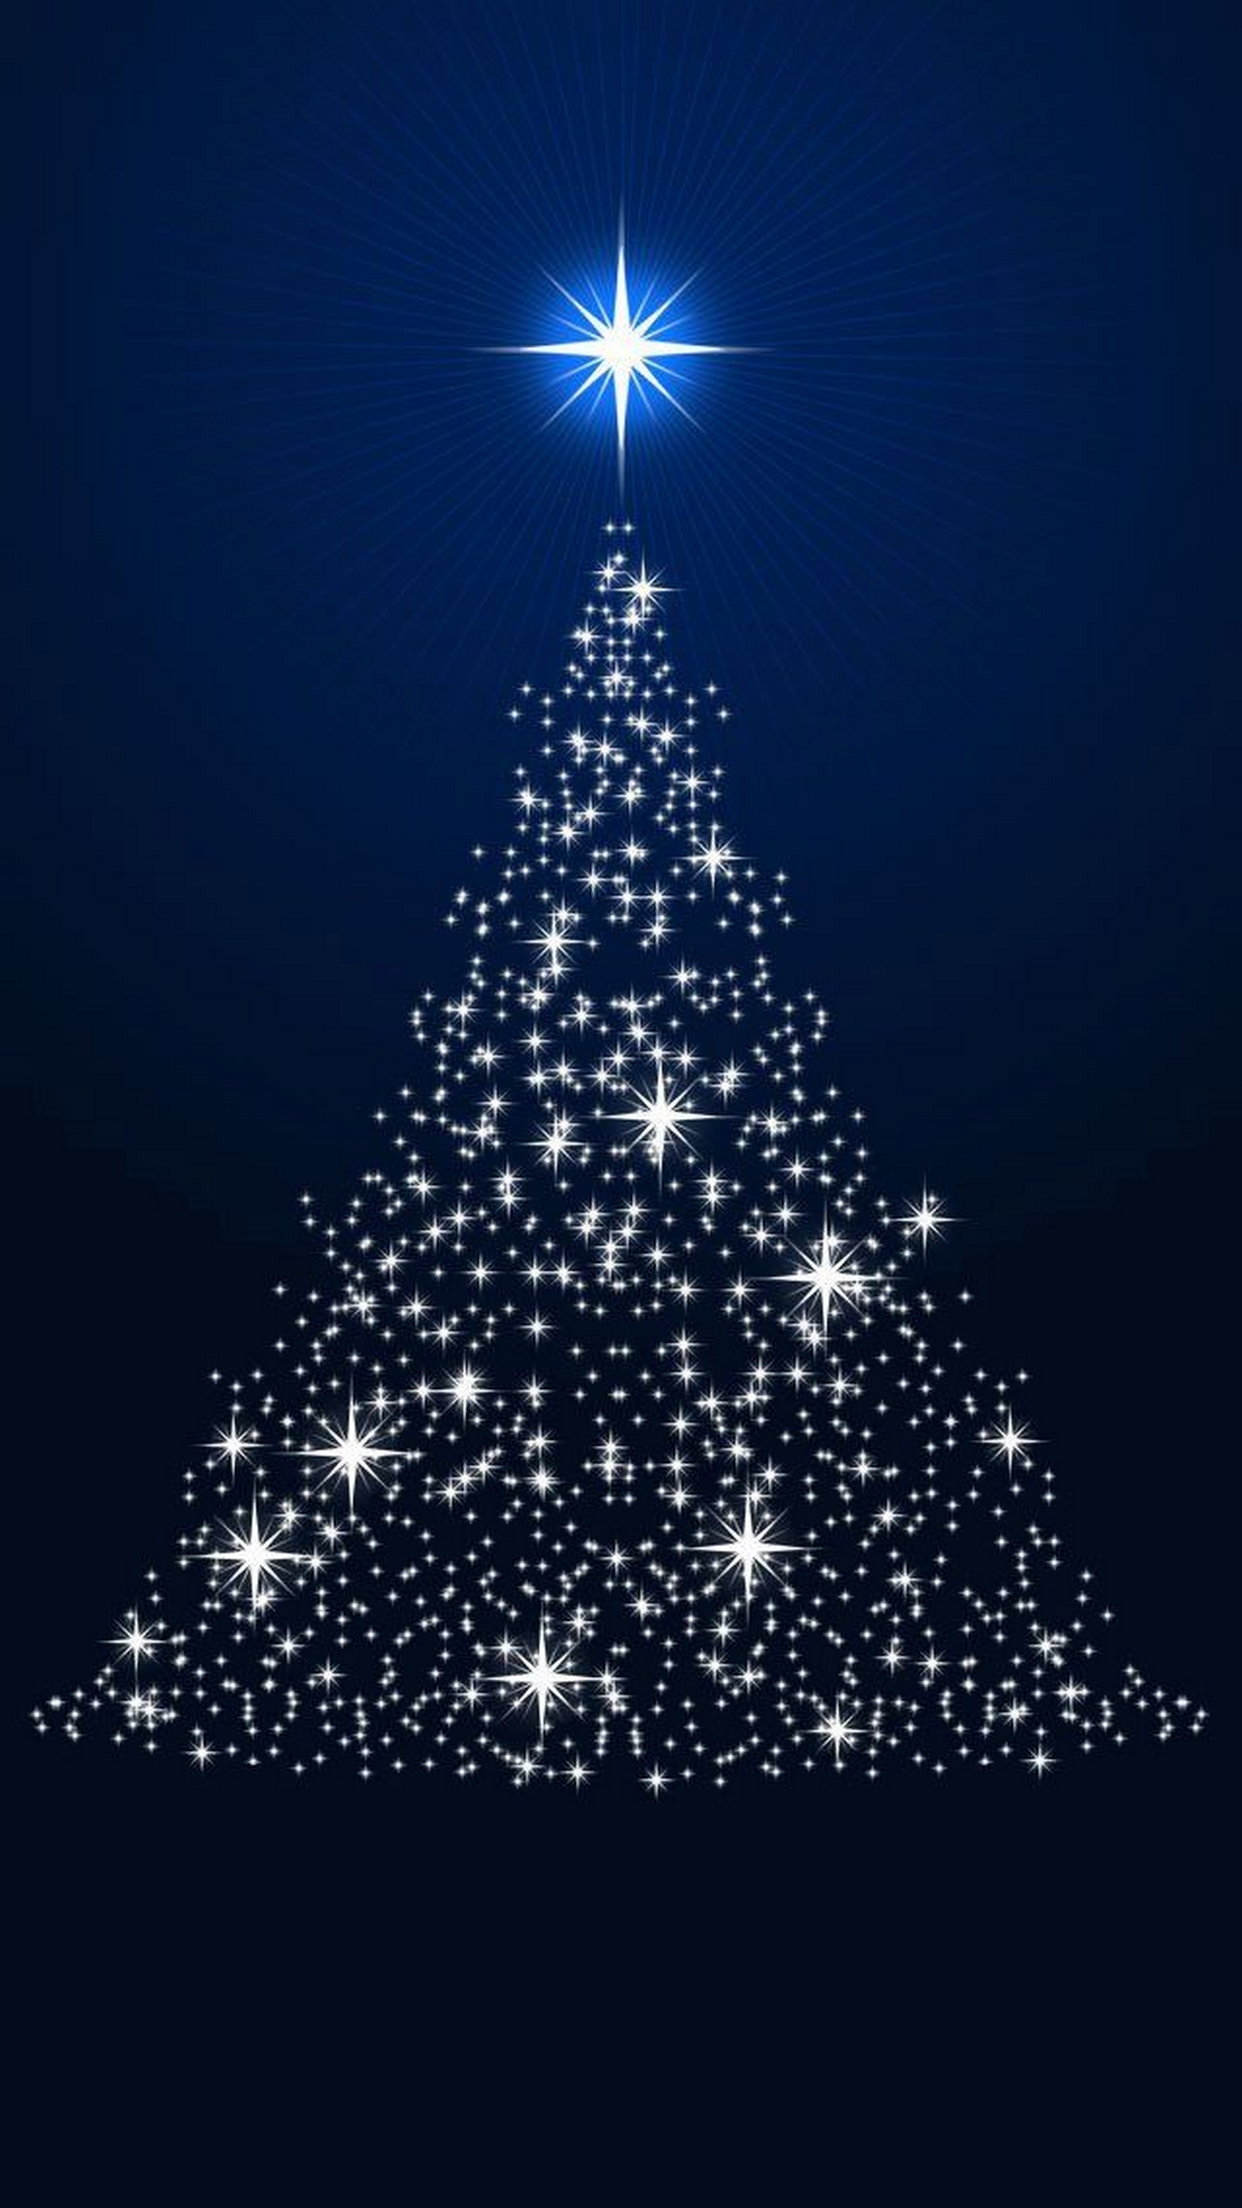 30 Christmas Wallpapers for iPhones 1242x2208